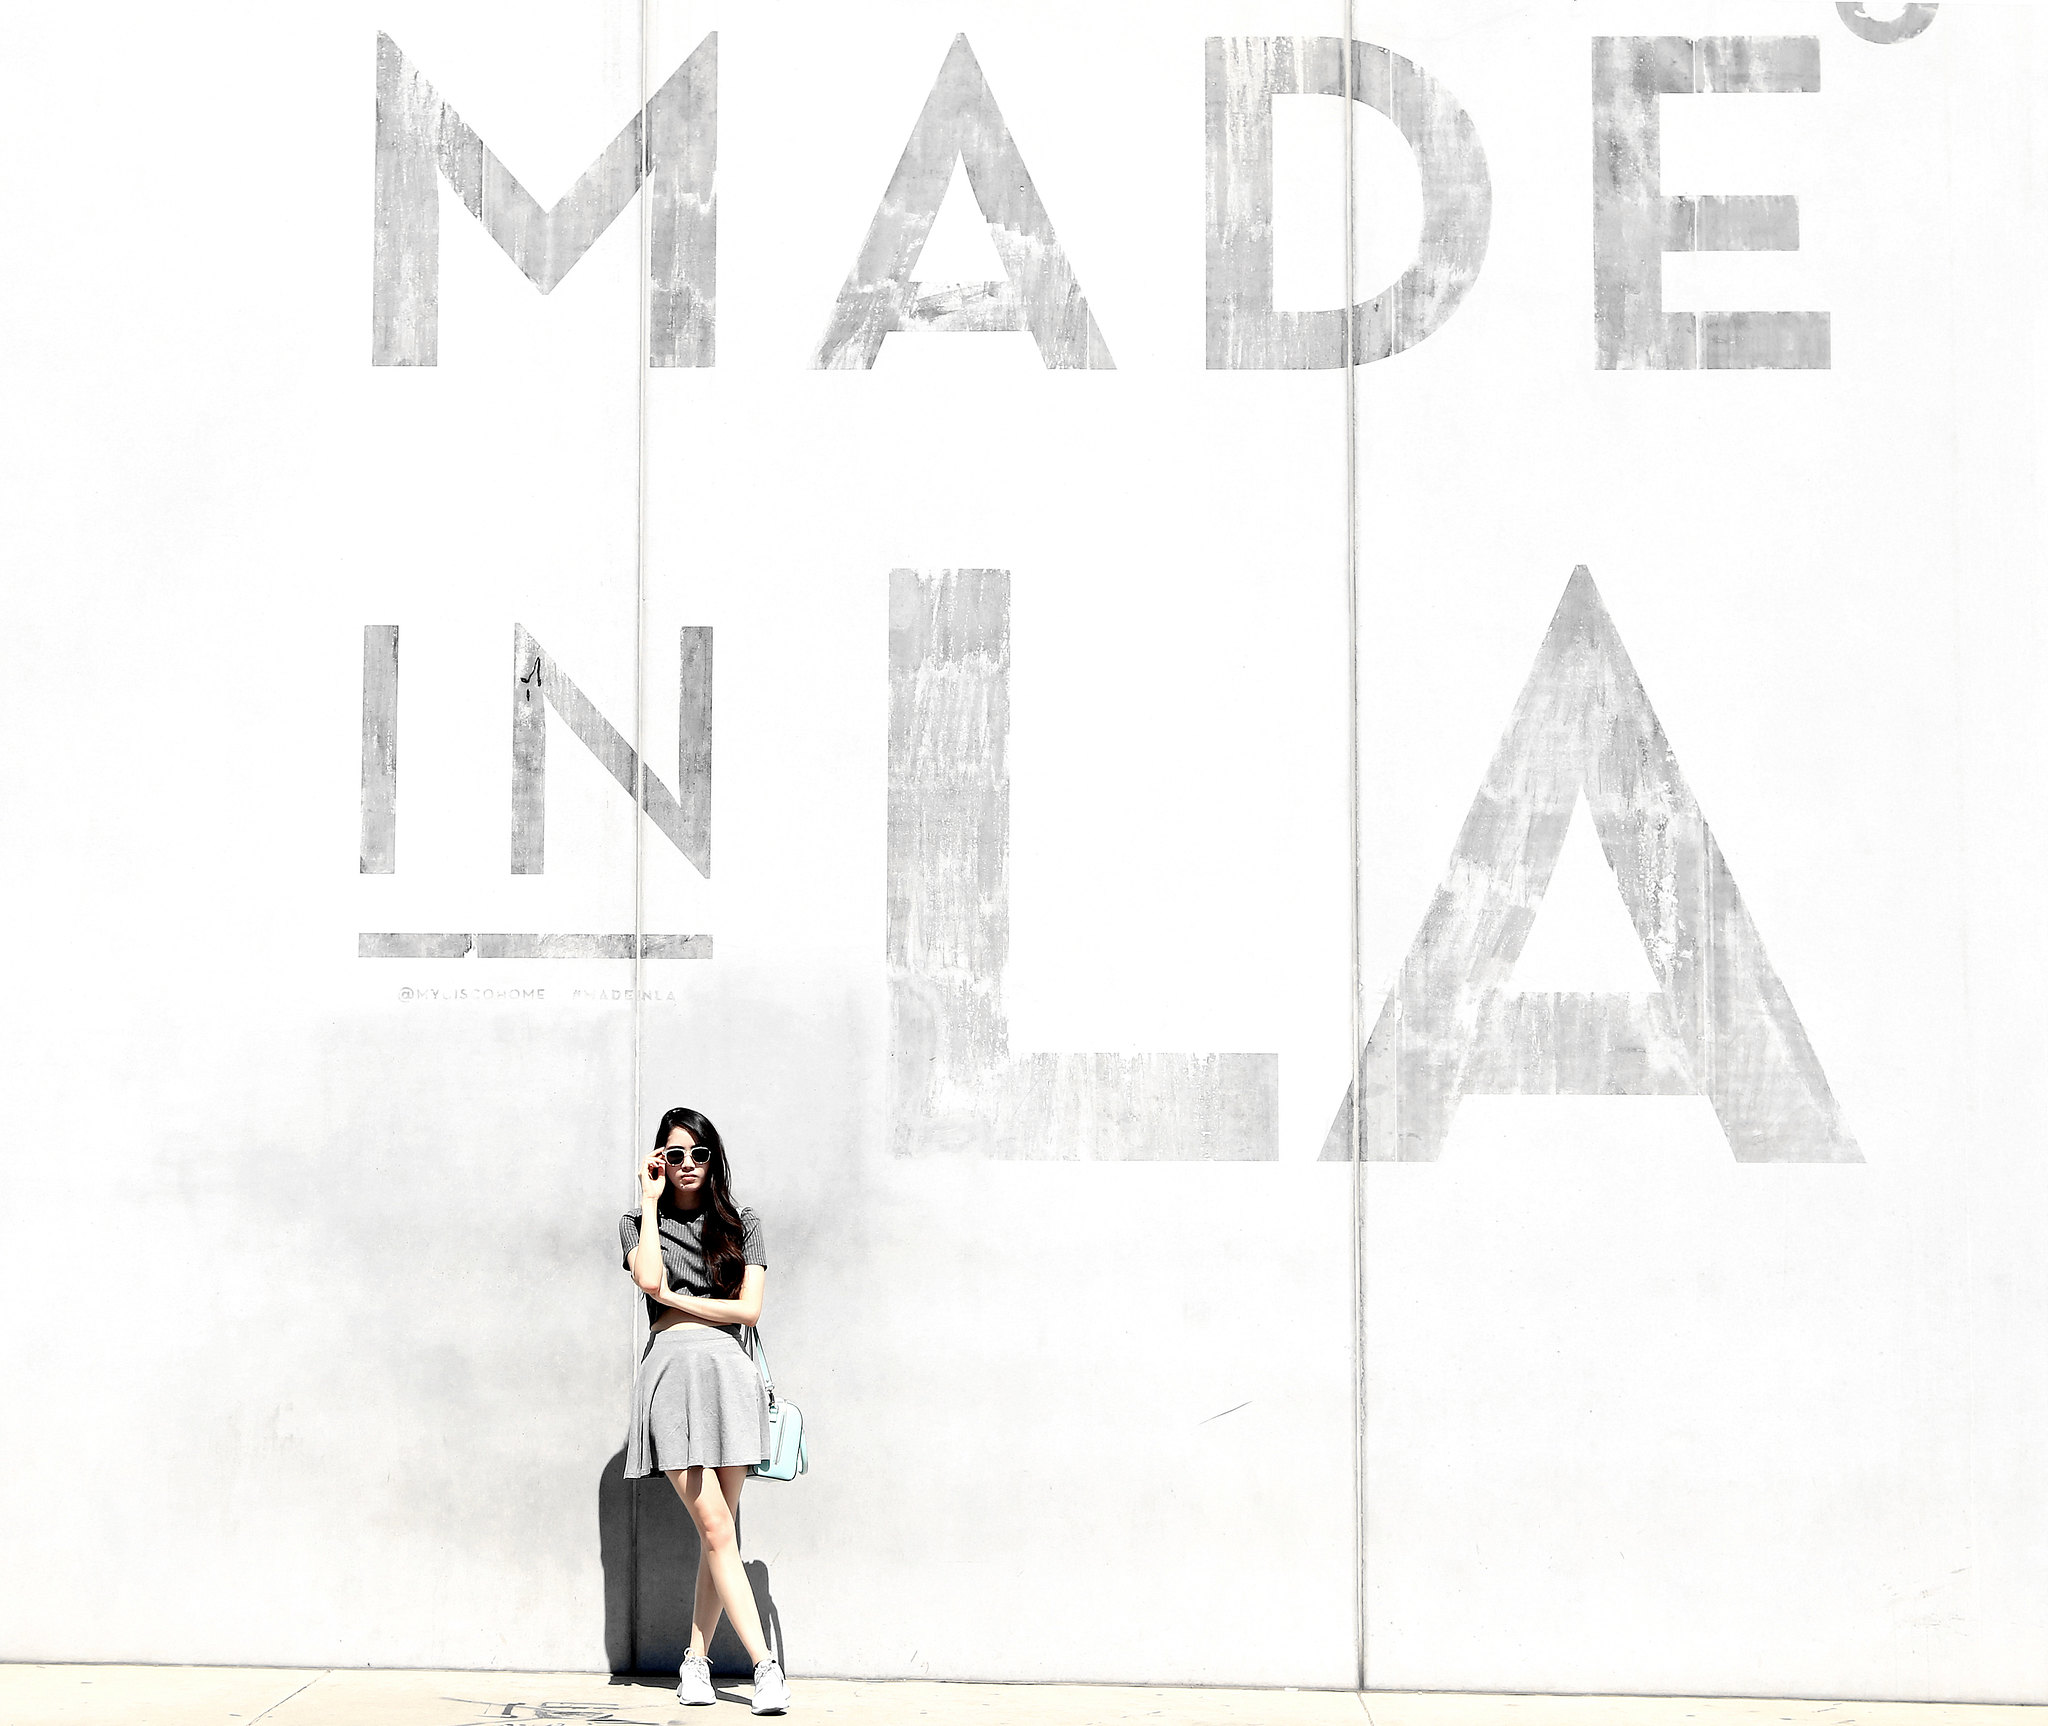 0306-made-in-la-los-angeles-dtla-hipster-wall-art-sporty-chic-athleisure